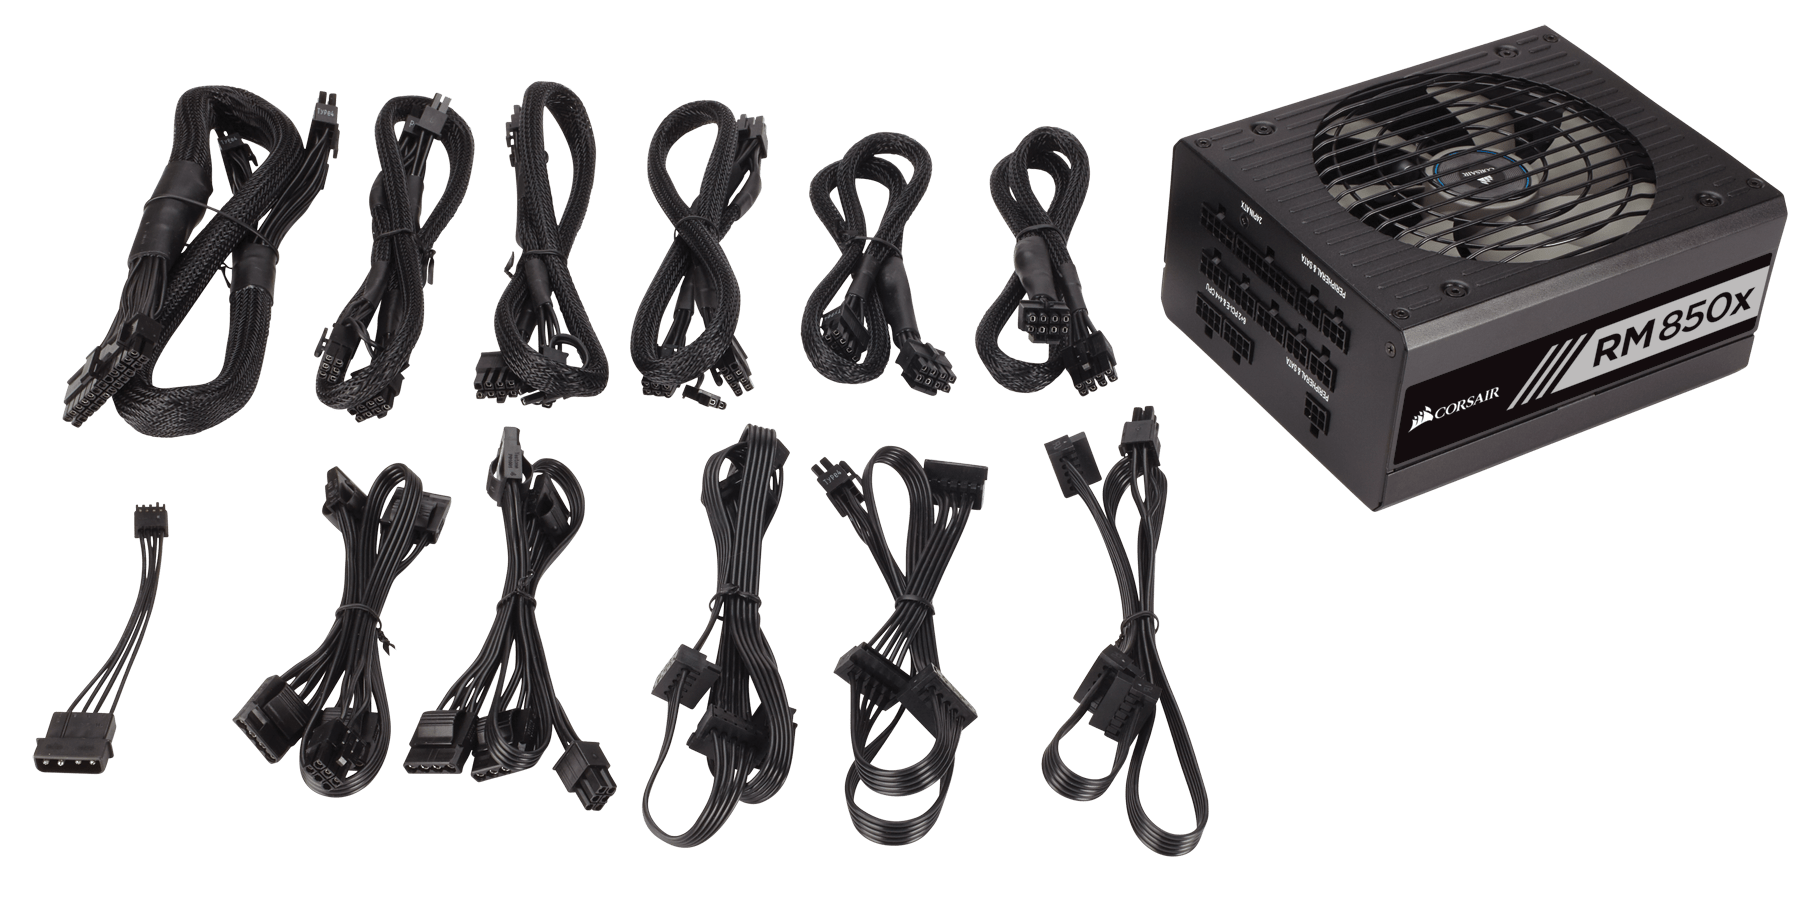 Rmx Series Rm850x 850 Watt 80 Plus Gold Certified Fully Modular Psu Wall Ac Capacitor Wiring Diagram Cable Set Installation